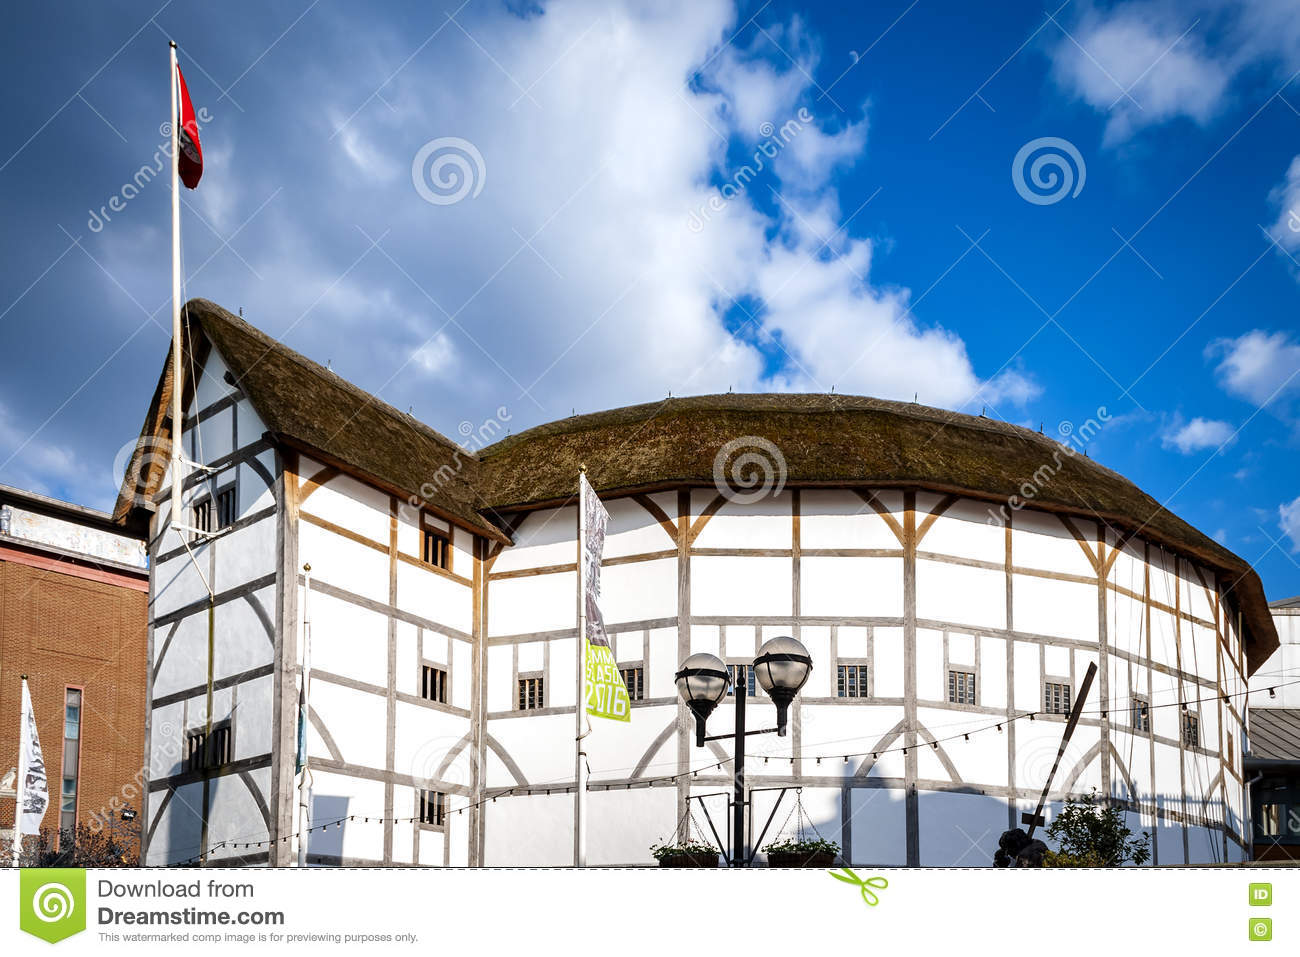 Shakespeare s Globe on a sunny day